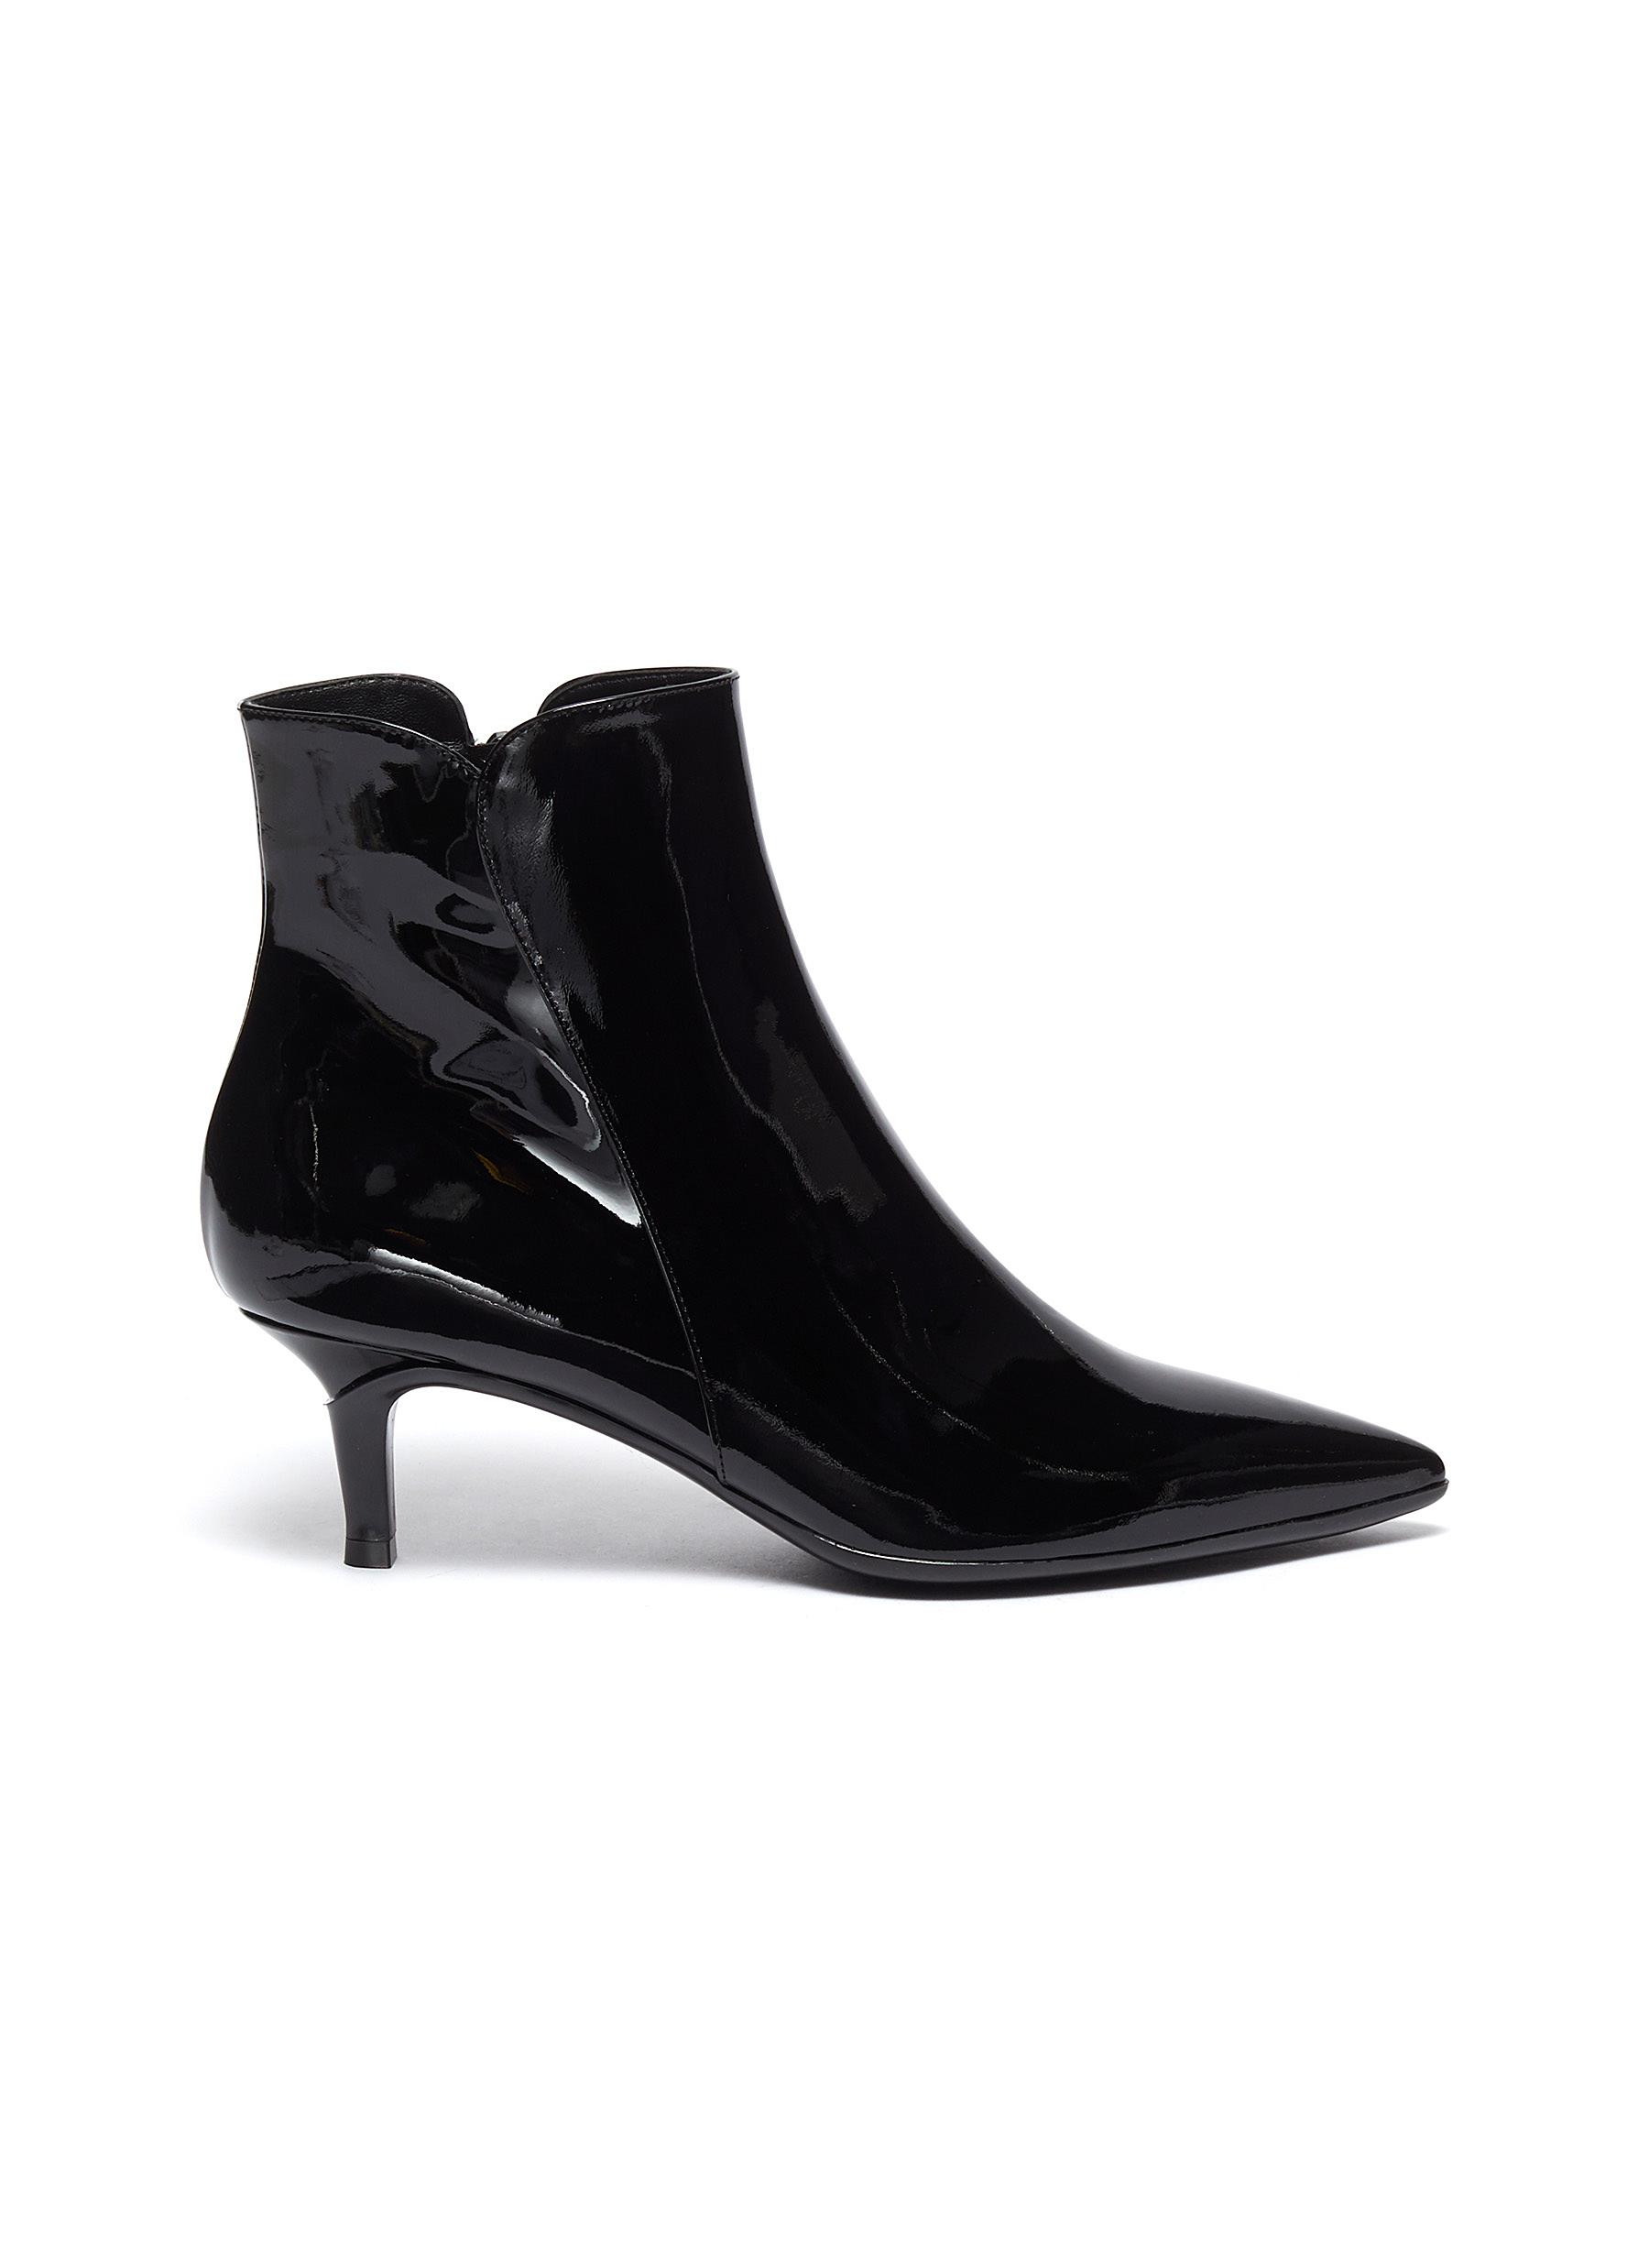 Gianvito Rossi Boots Patent leather ankle boots